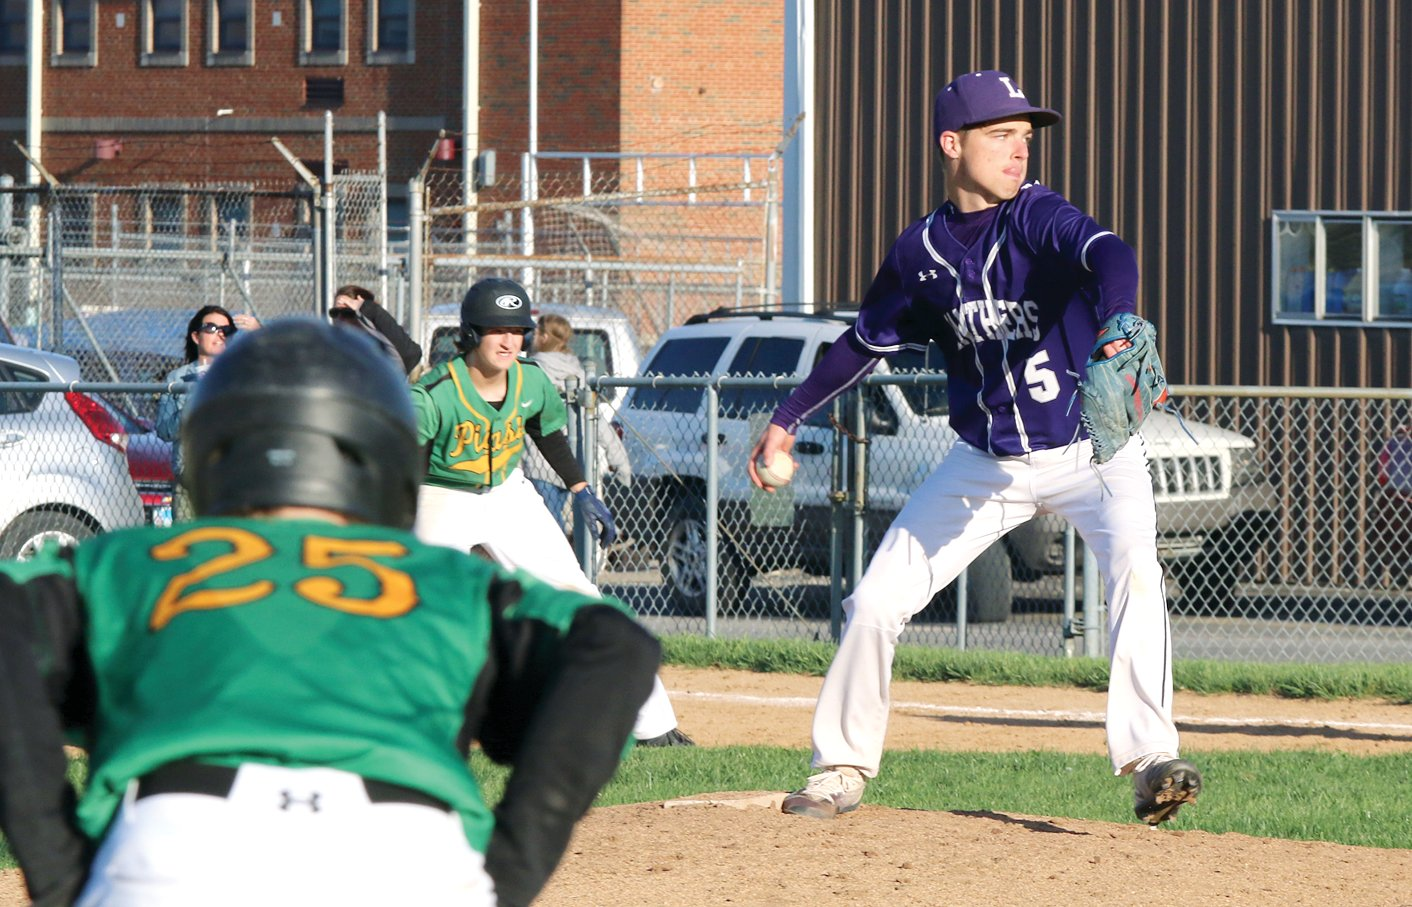 With the bases full of Piasa Birds, Litchfield senior Jeremy Frazier pitched his way out of trouble in the top of the seventh inning, allowing just one run to keep the score at a manageable 7-4 margin in Southwestern's favor. Frazier would also play a part in Litchfield's come-from-behind rally in the bottom of the seventh, drawing a walk and scoring the go-ahead run off a Chase Hires single that gave the Purple Panthers a 8-7 victory.